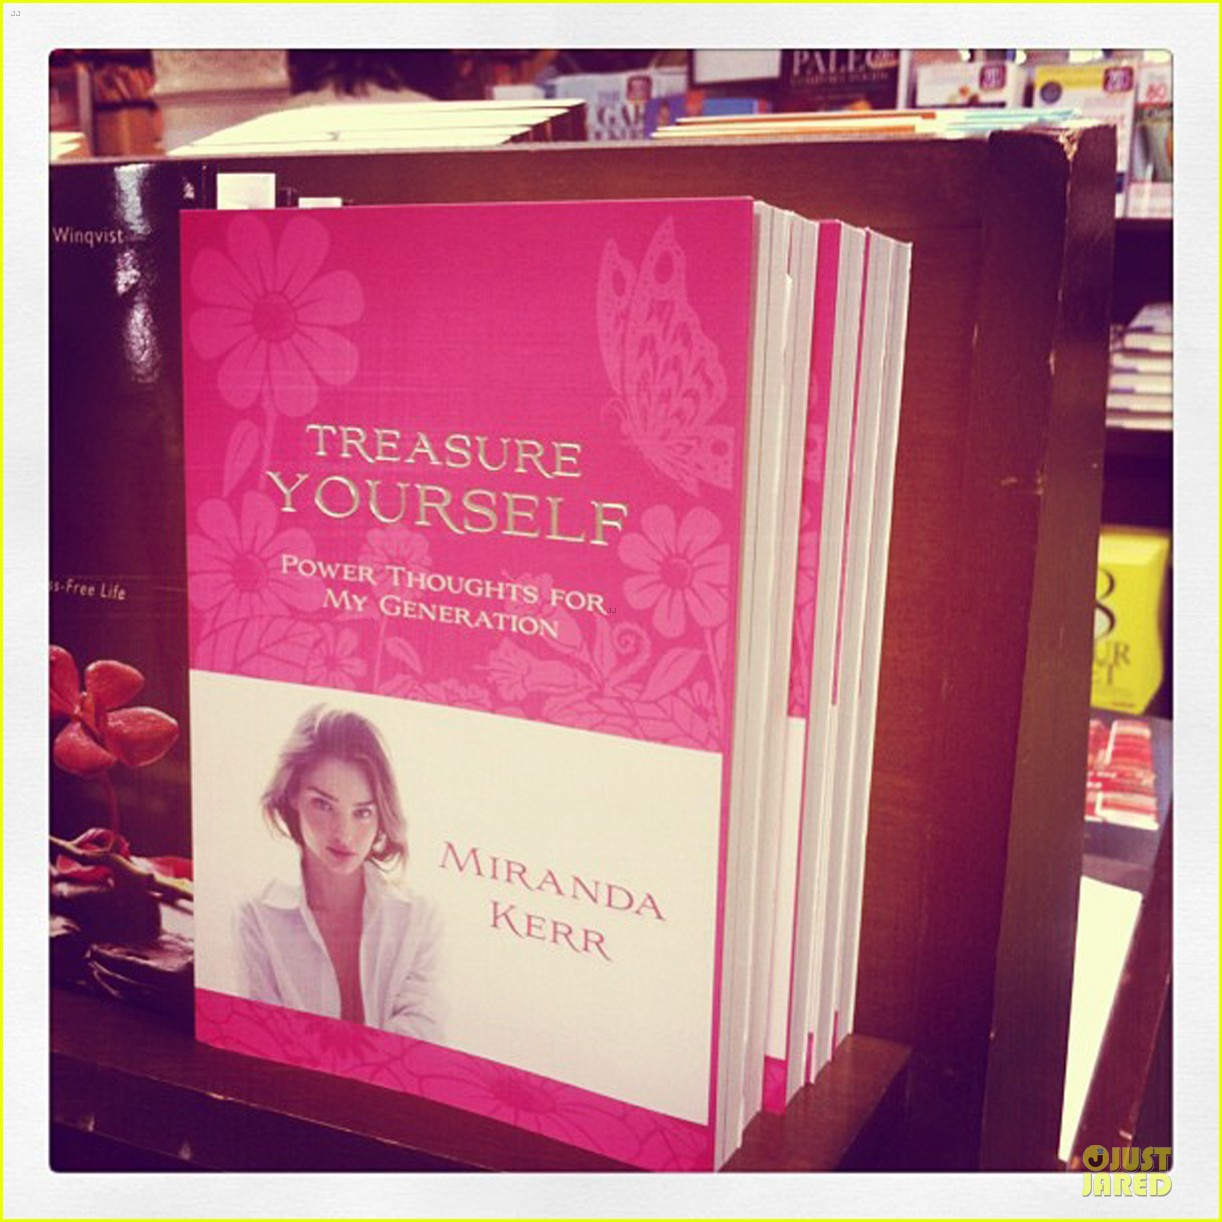 miranda kerr treasure yourself power thoughts for my generation author 05